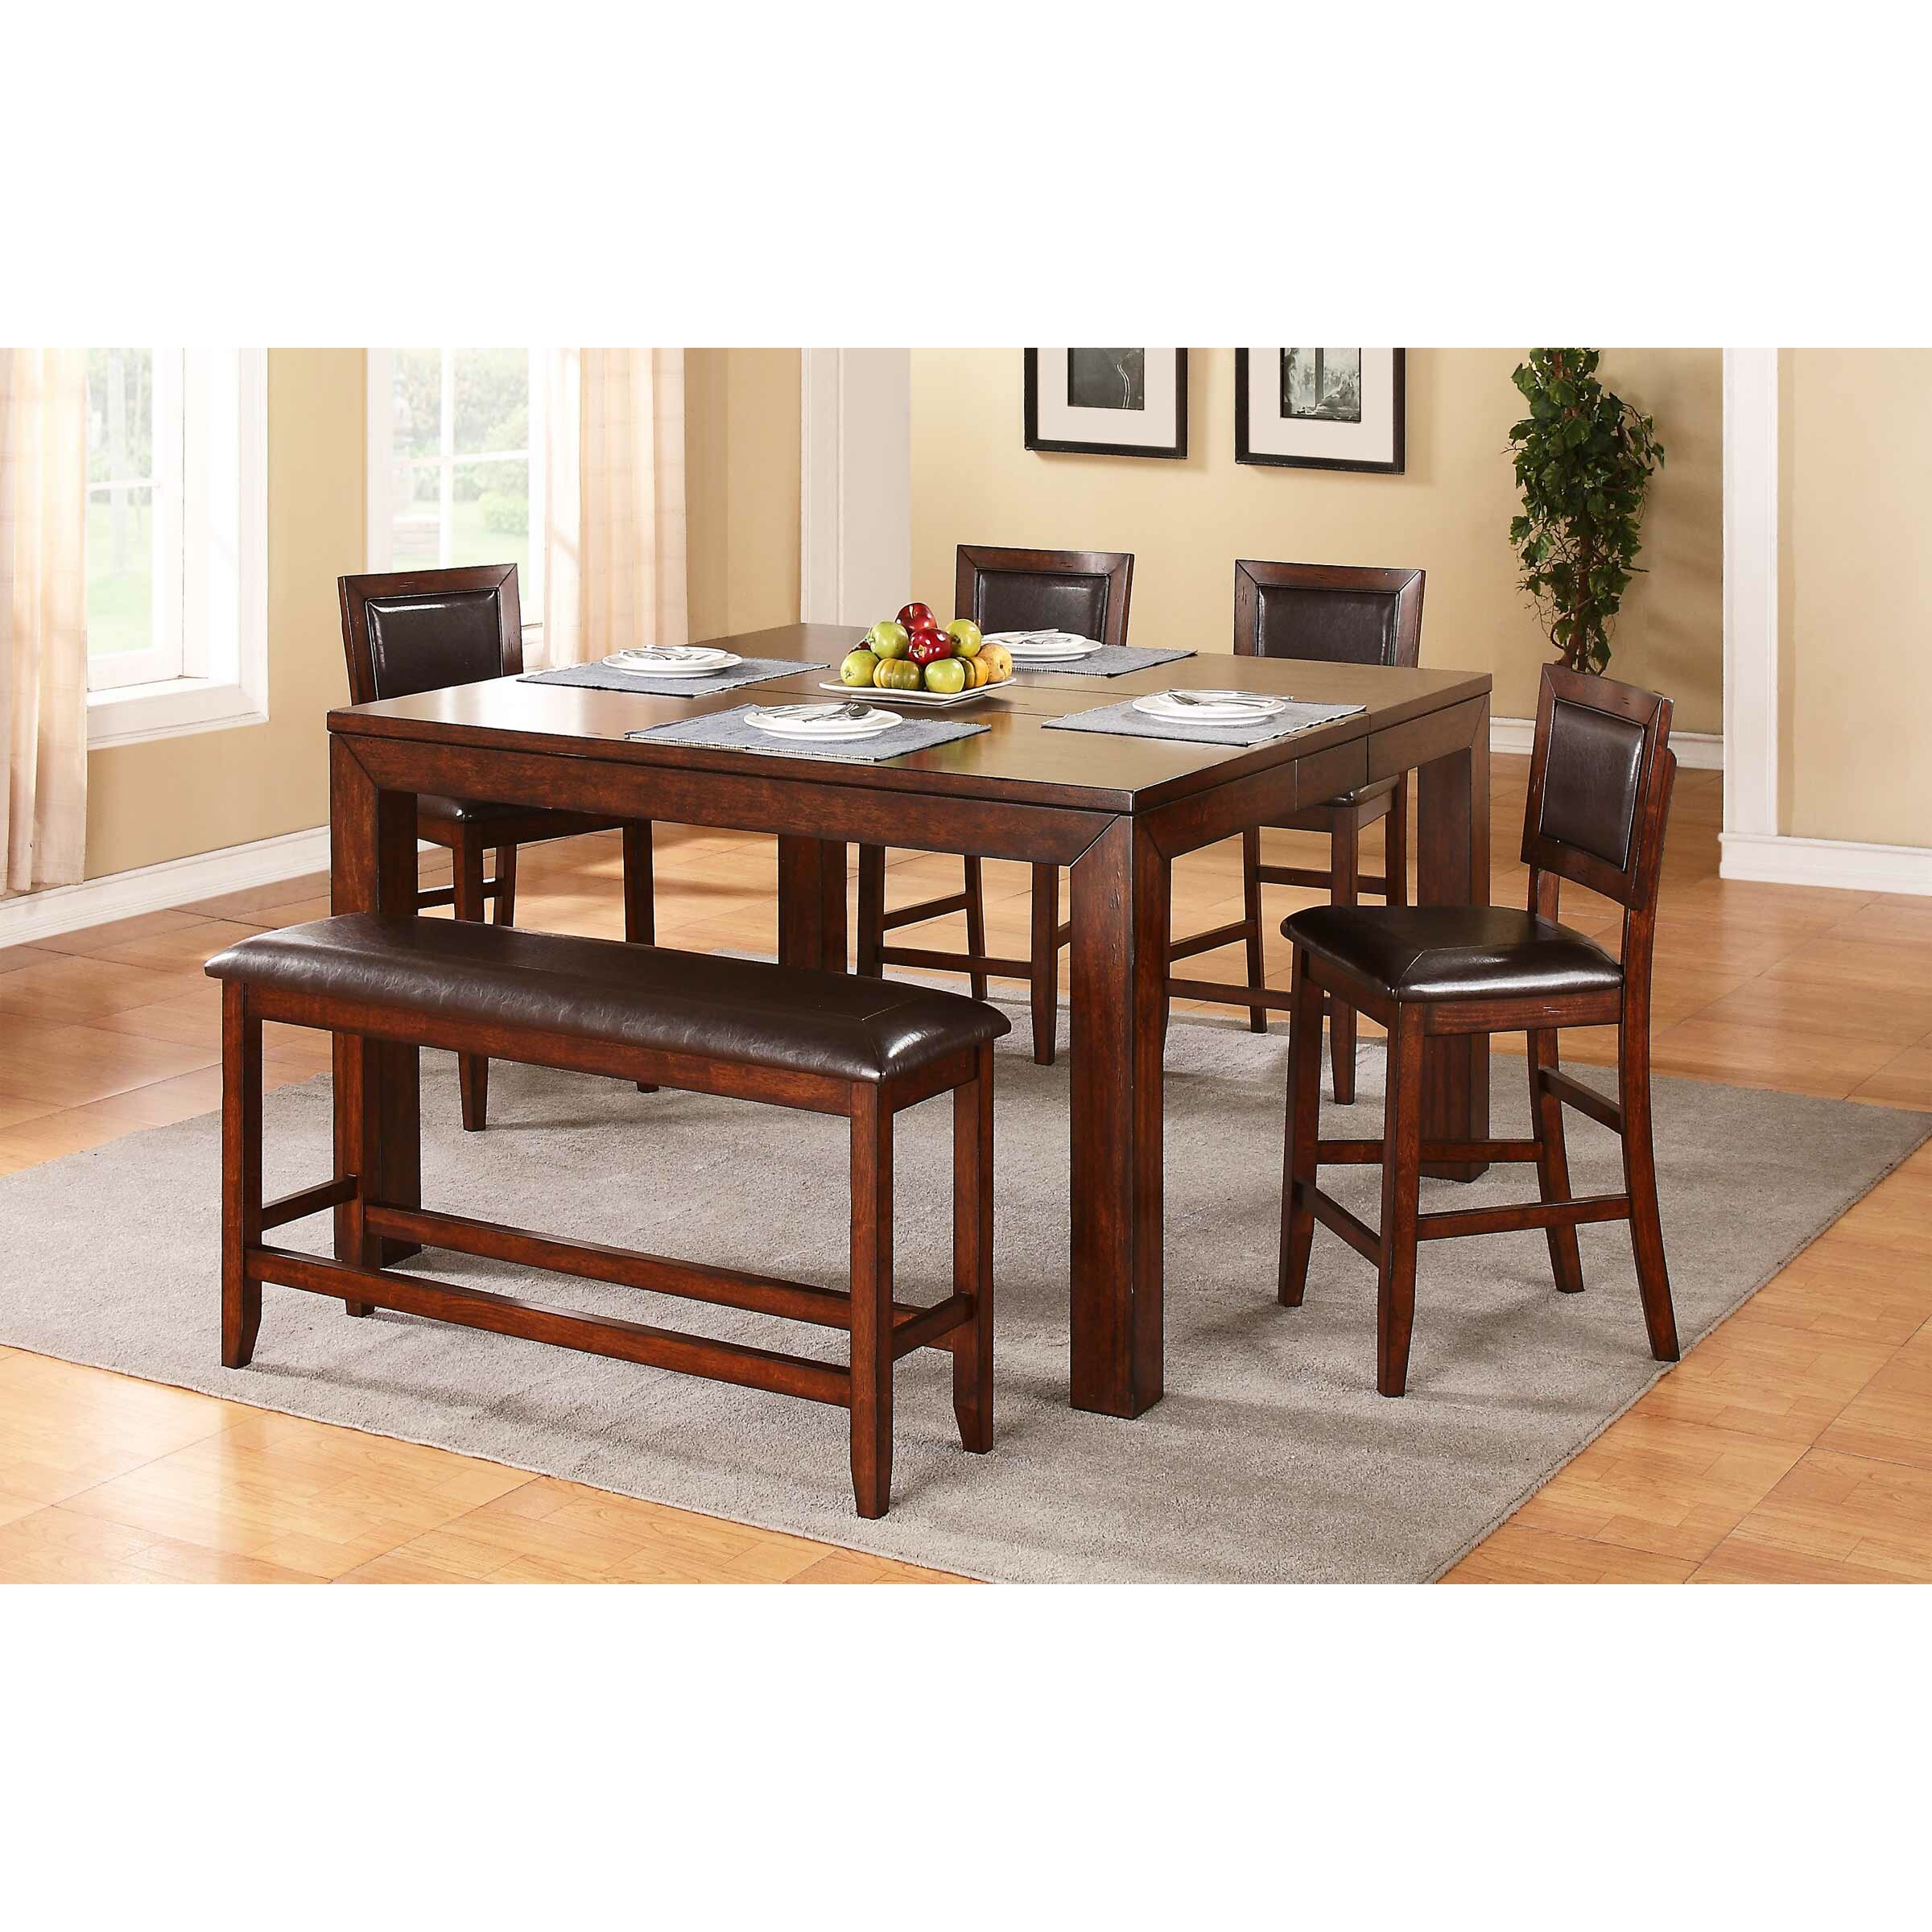 Winners Only, Inc. Fallbrook Wood Kitchen Bench & Reviews